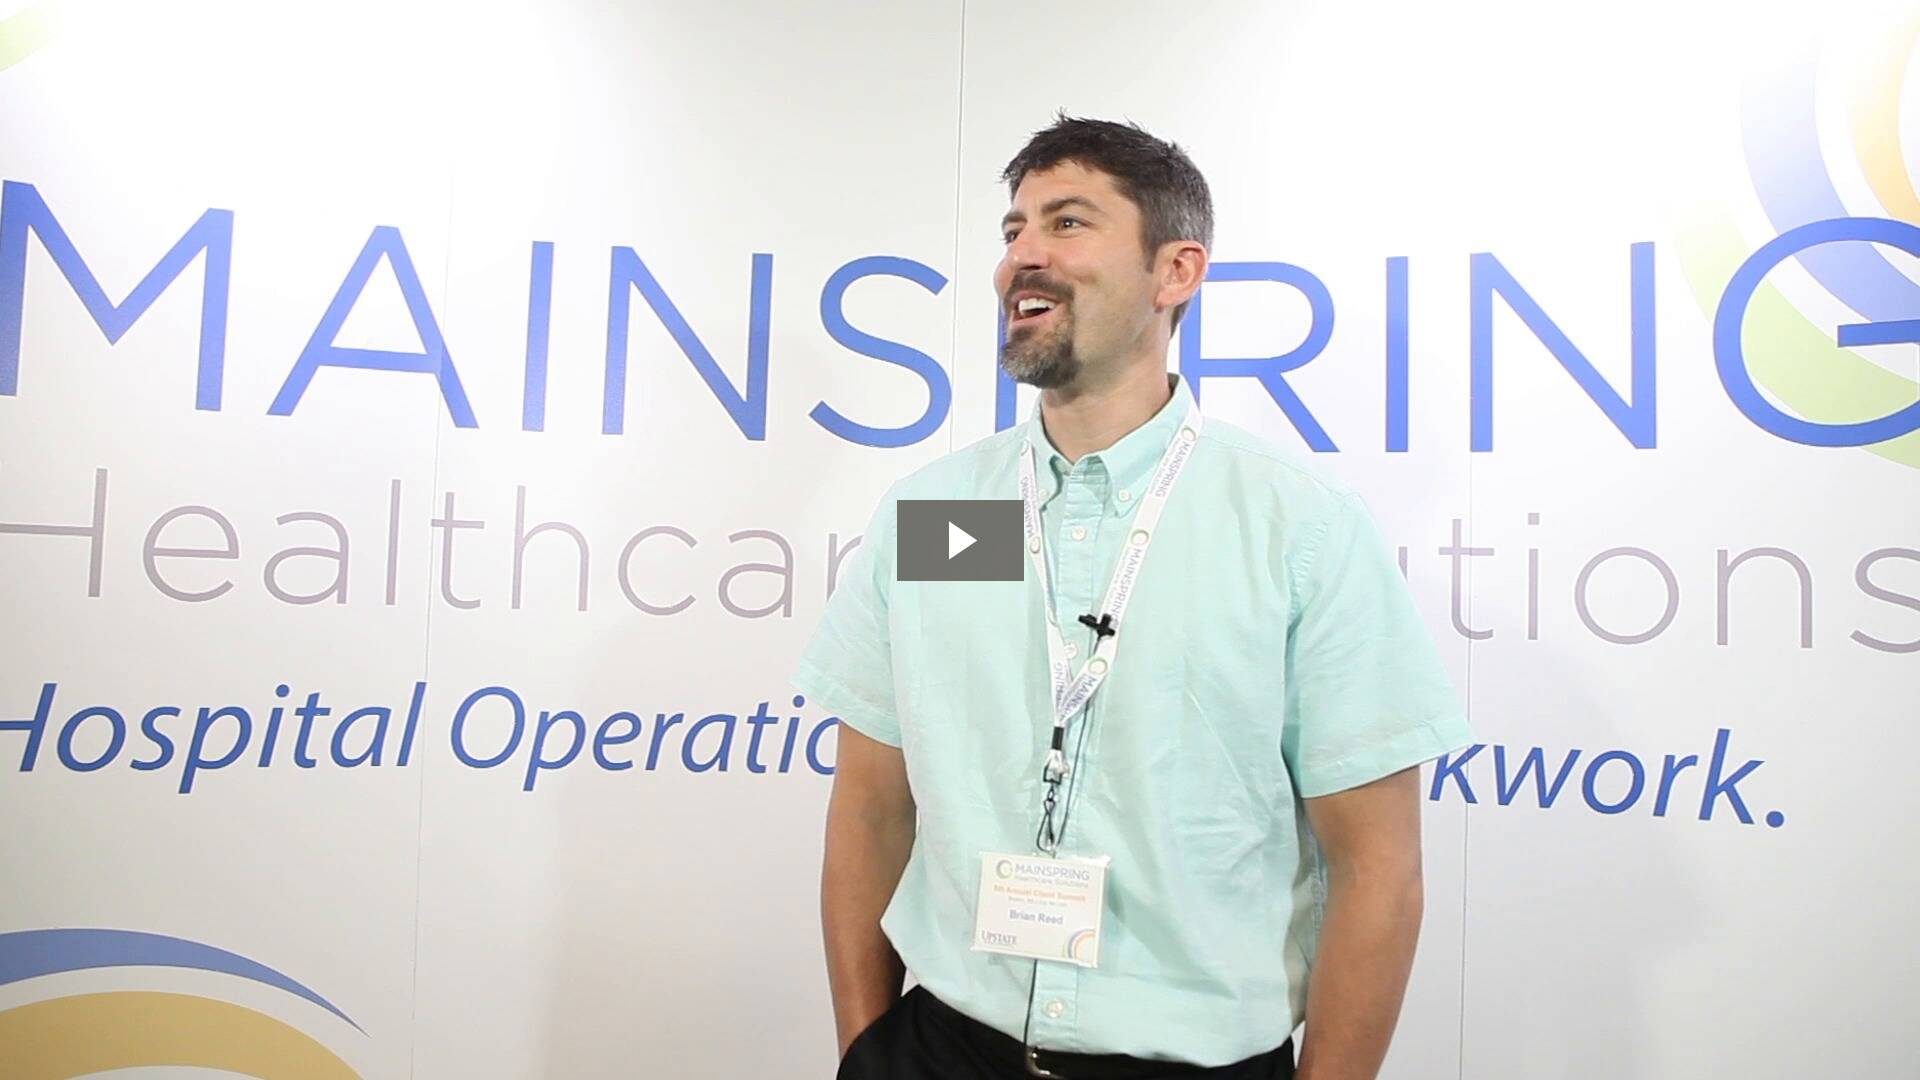 Brian Reed, Manager of Central Equipment Services at SUNY Upstate University Hospital talks about delivering award-winning service to nurses.